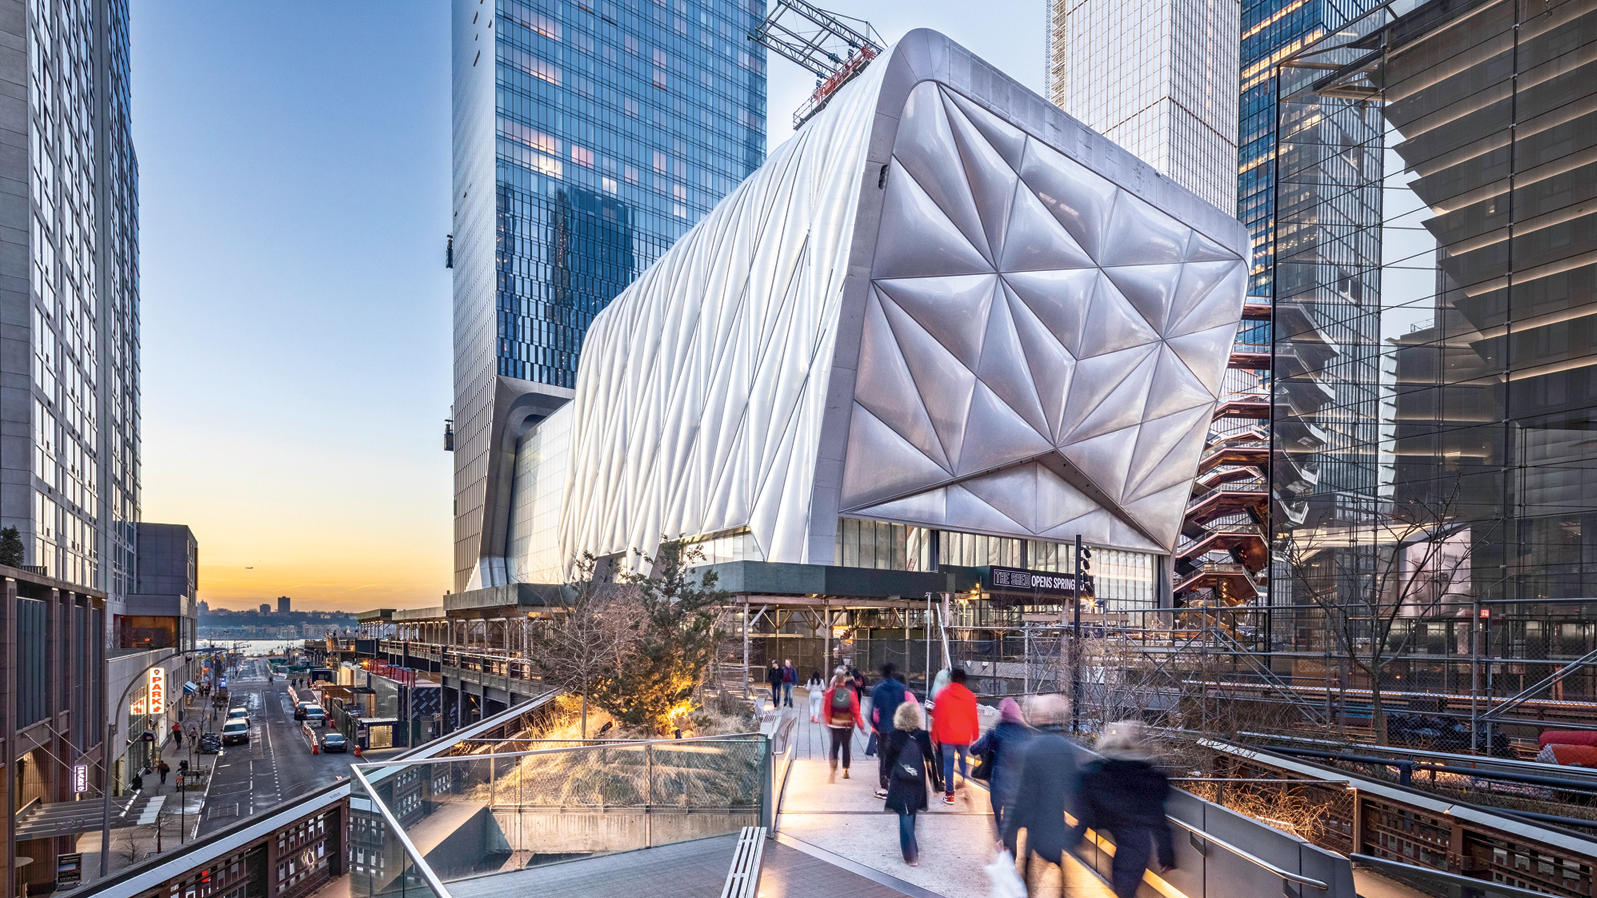 Exterior of The Shed in Hudson Yards, seen from the High Line